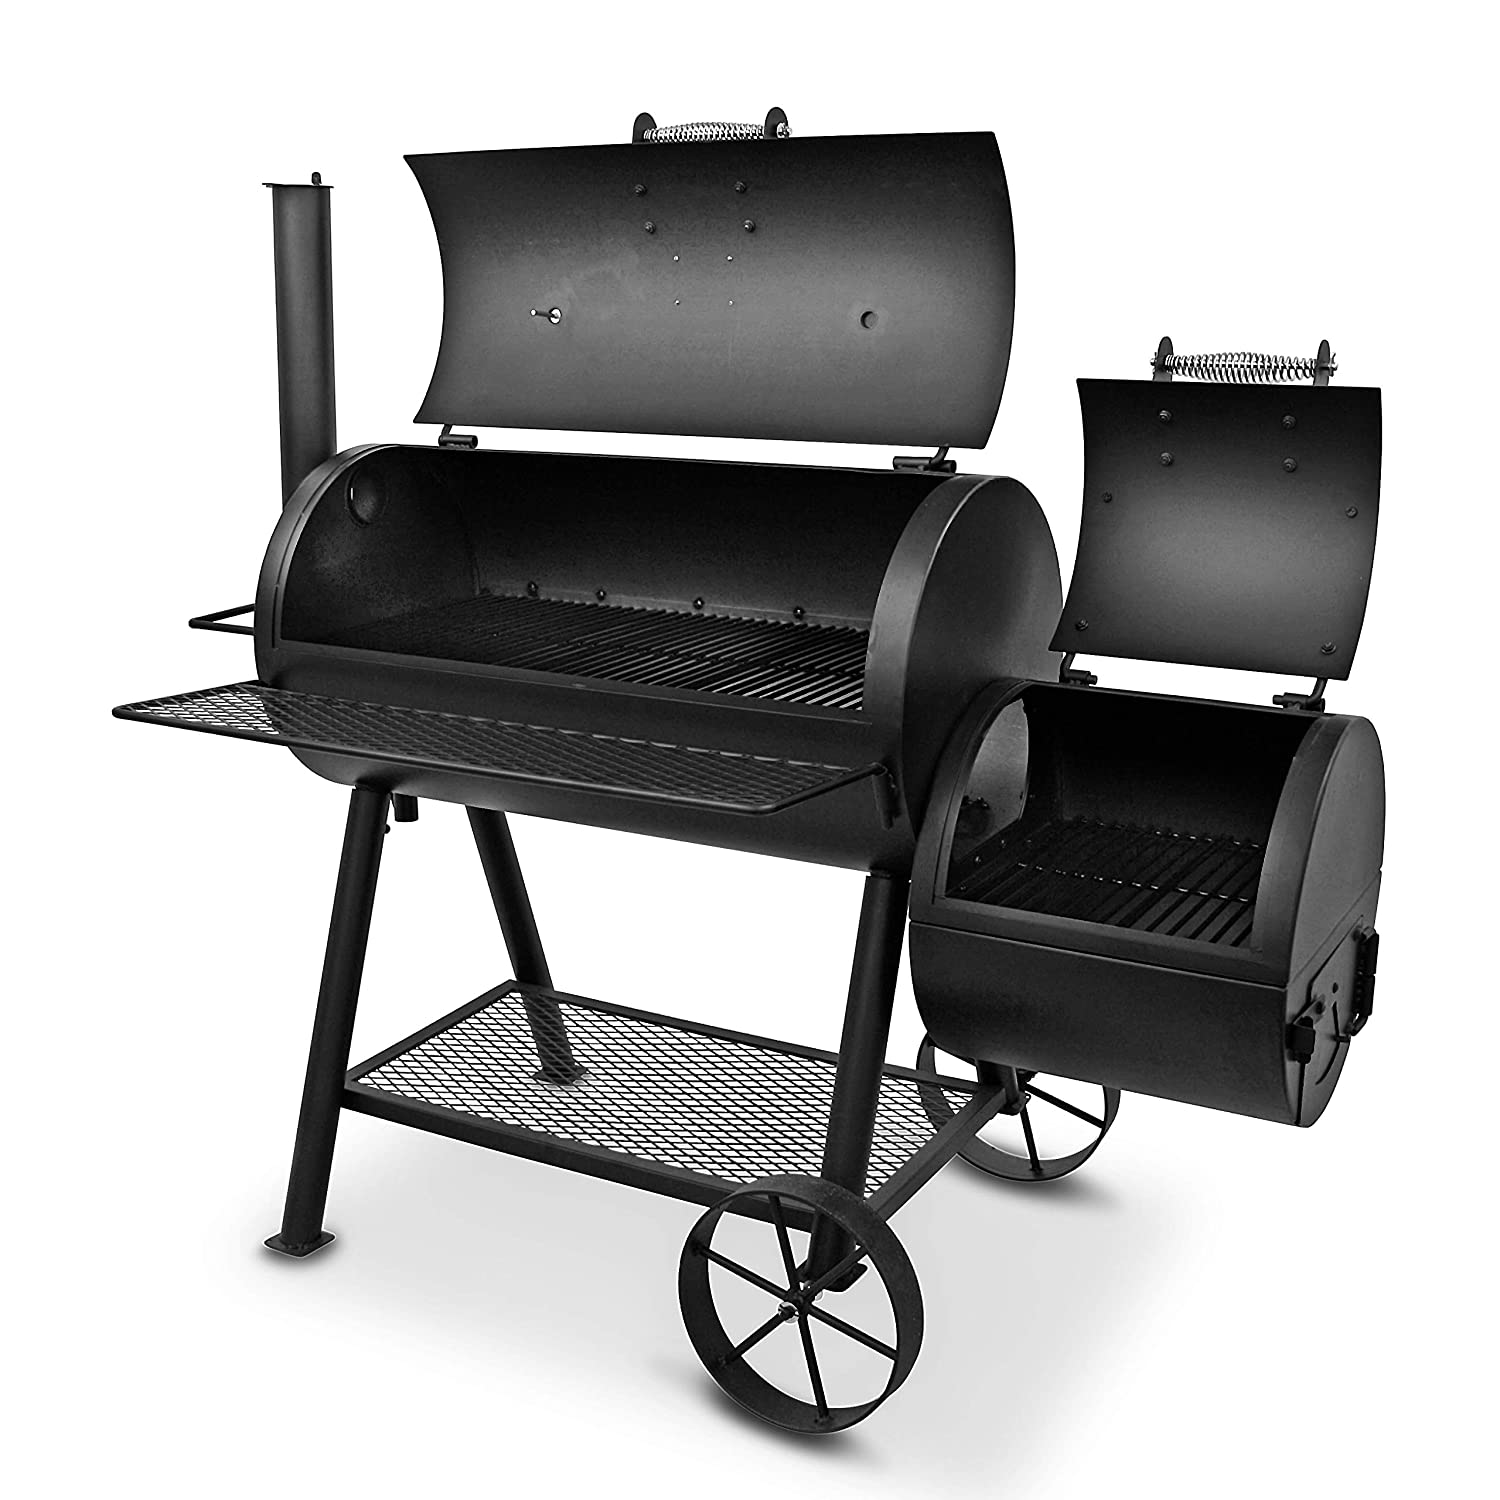 Oklahoma Joe's Highland Offset Smoker